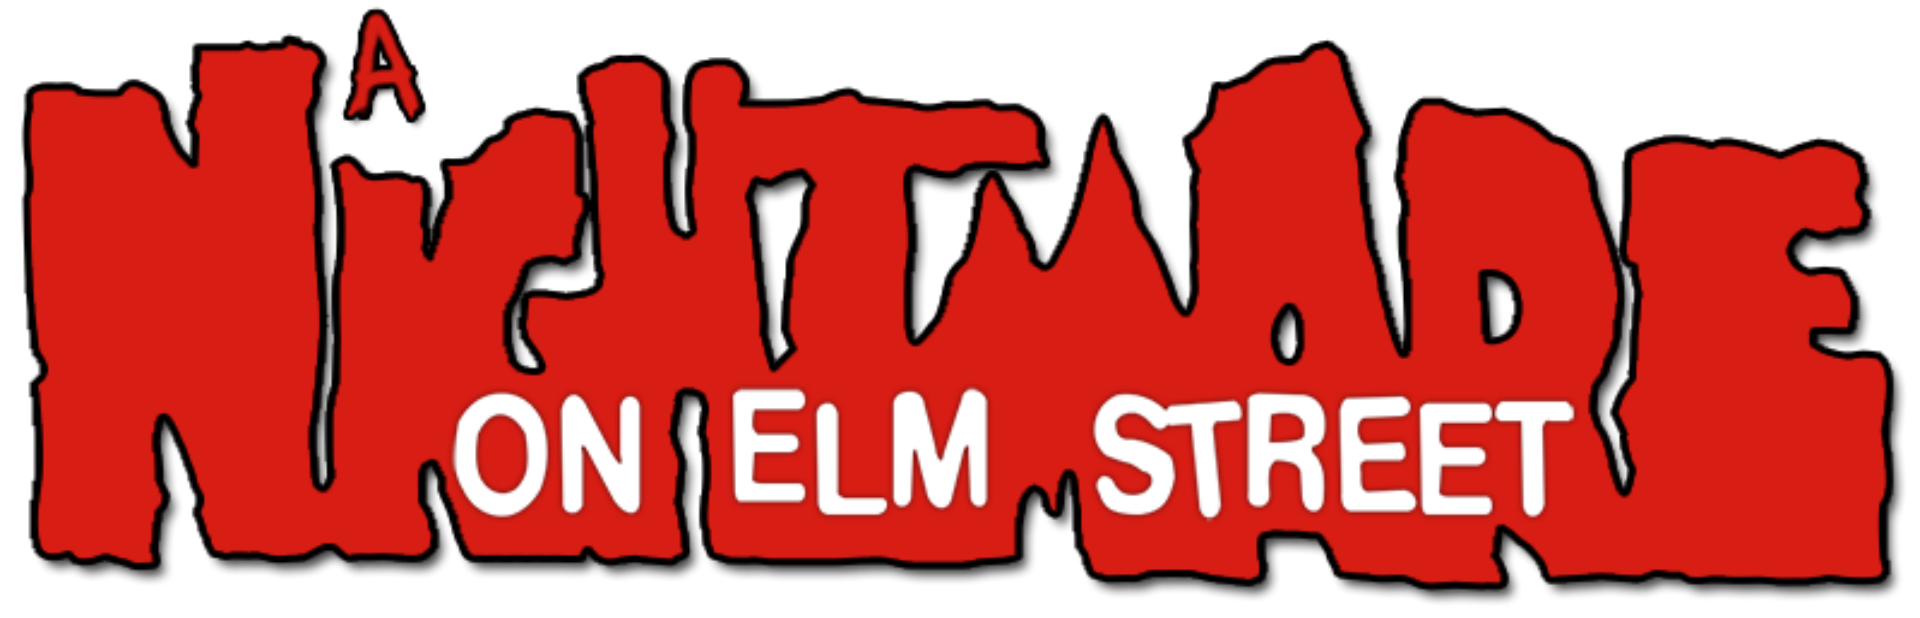 Nightmare on elm street png. Archivo a movie logo